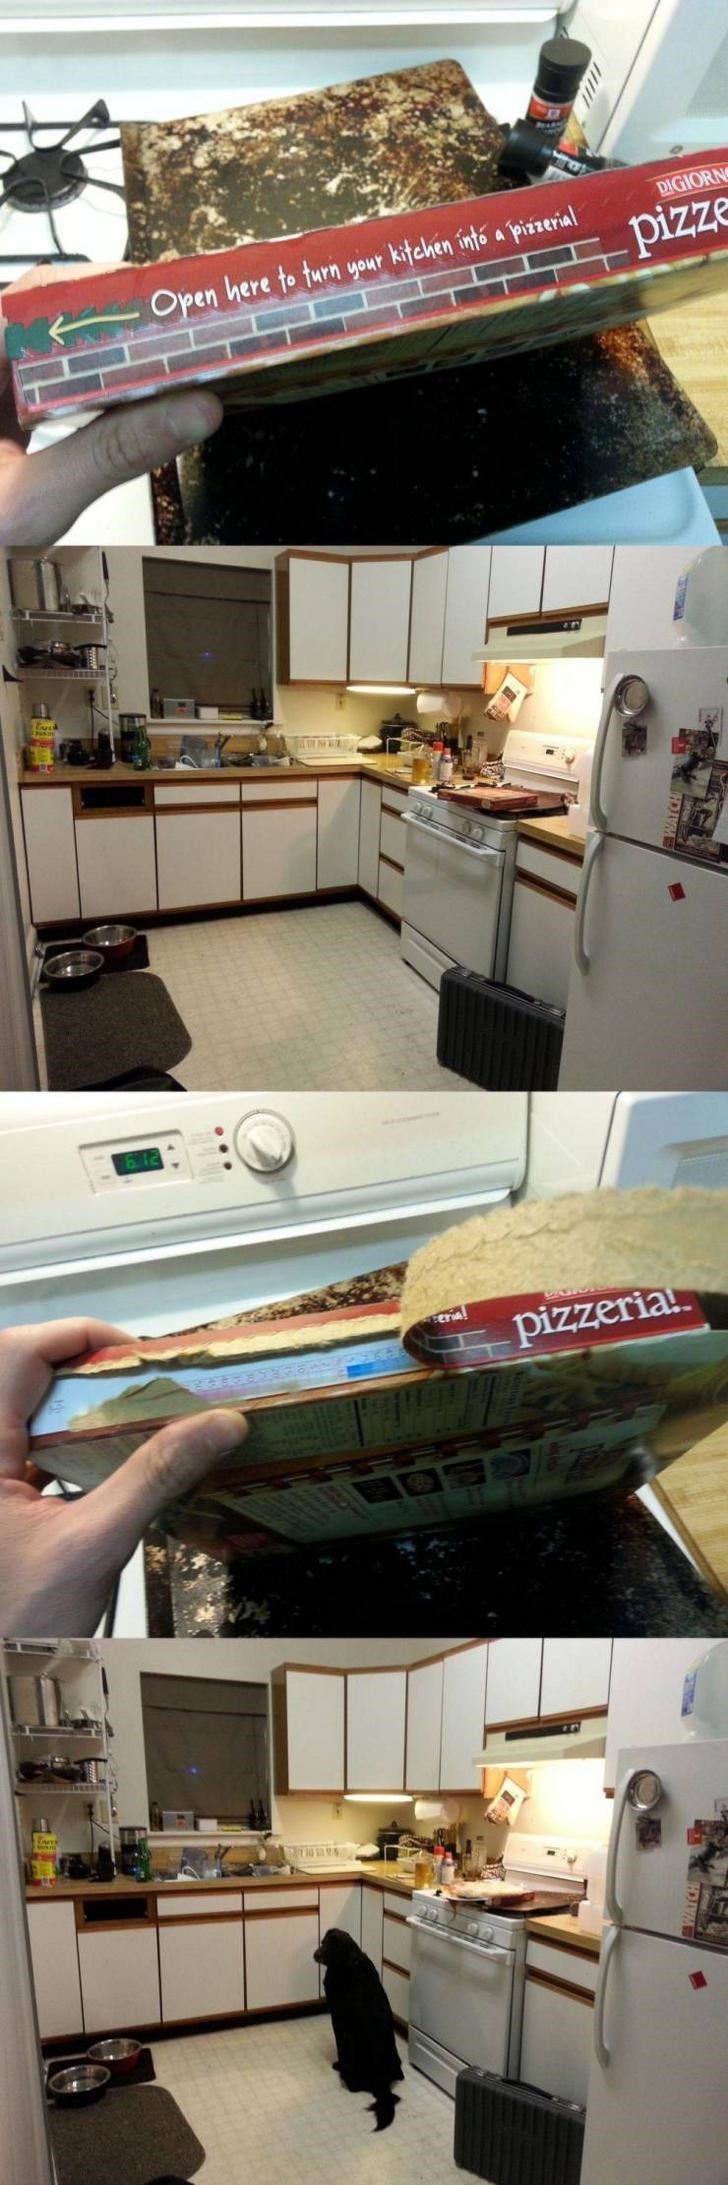 Expectation Vs Reality - Room - Open here to turn your kitchen intó a pizzerial DIGIORN pizze eria pizzeria! A